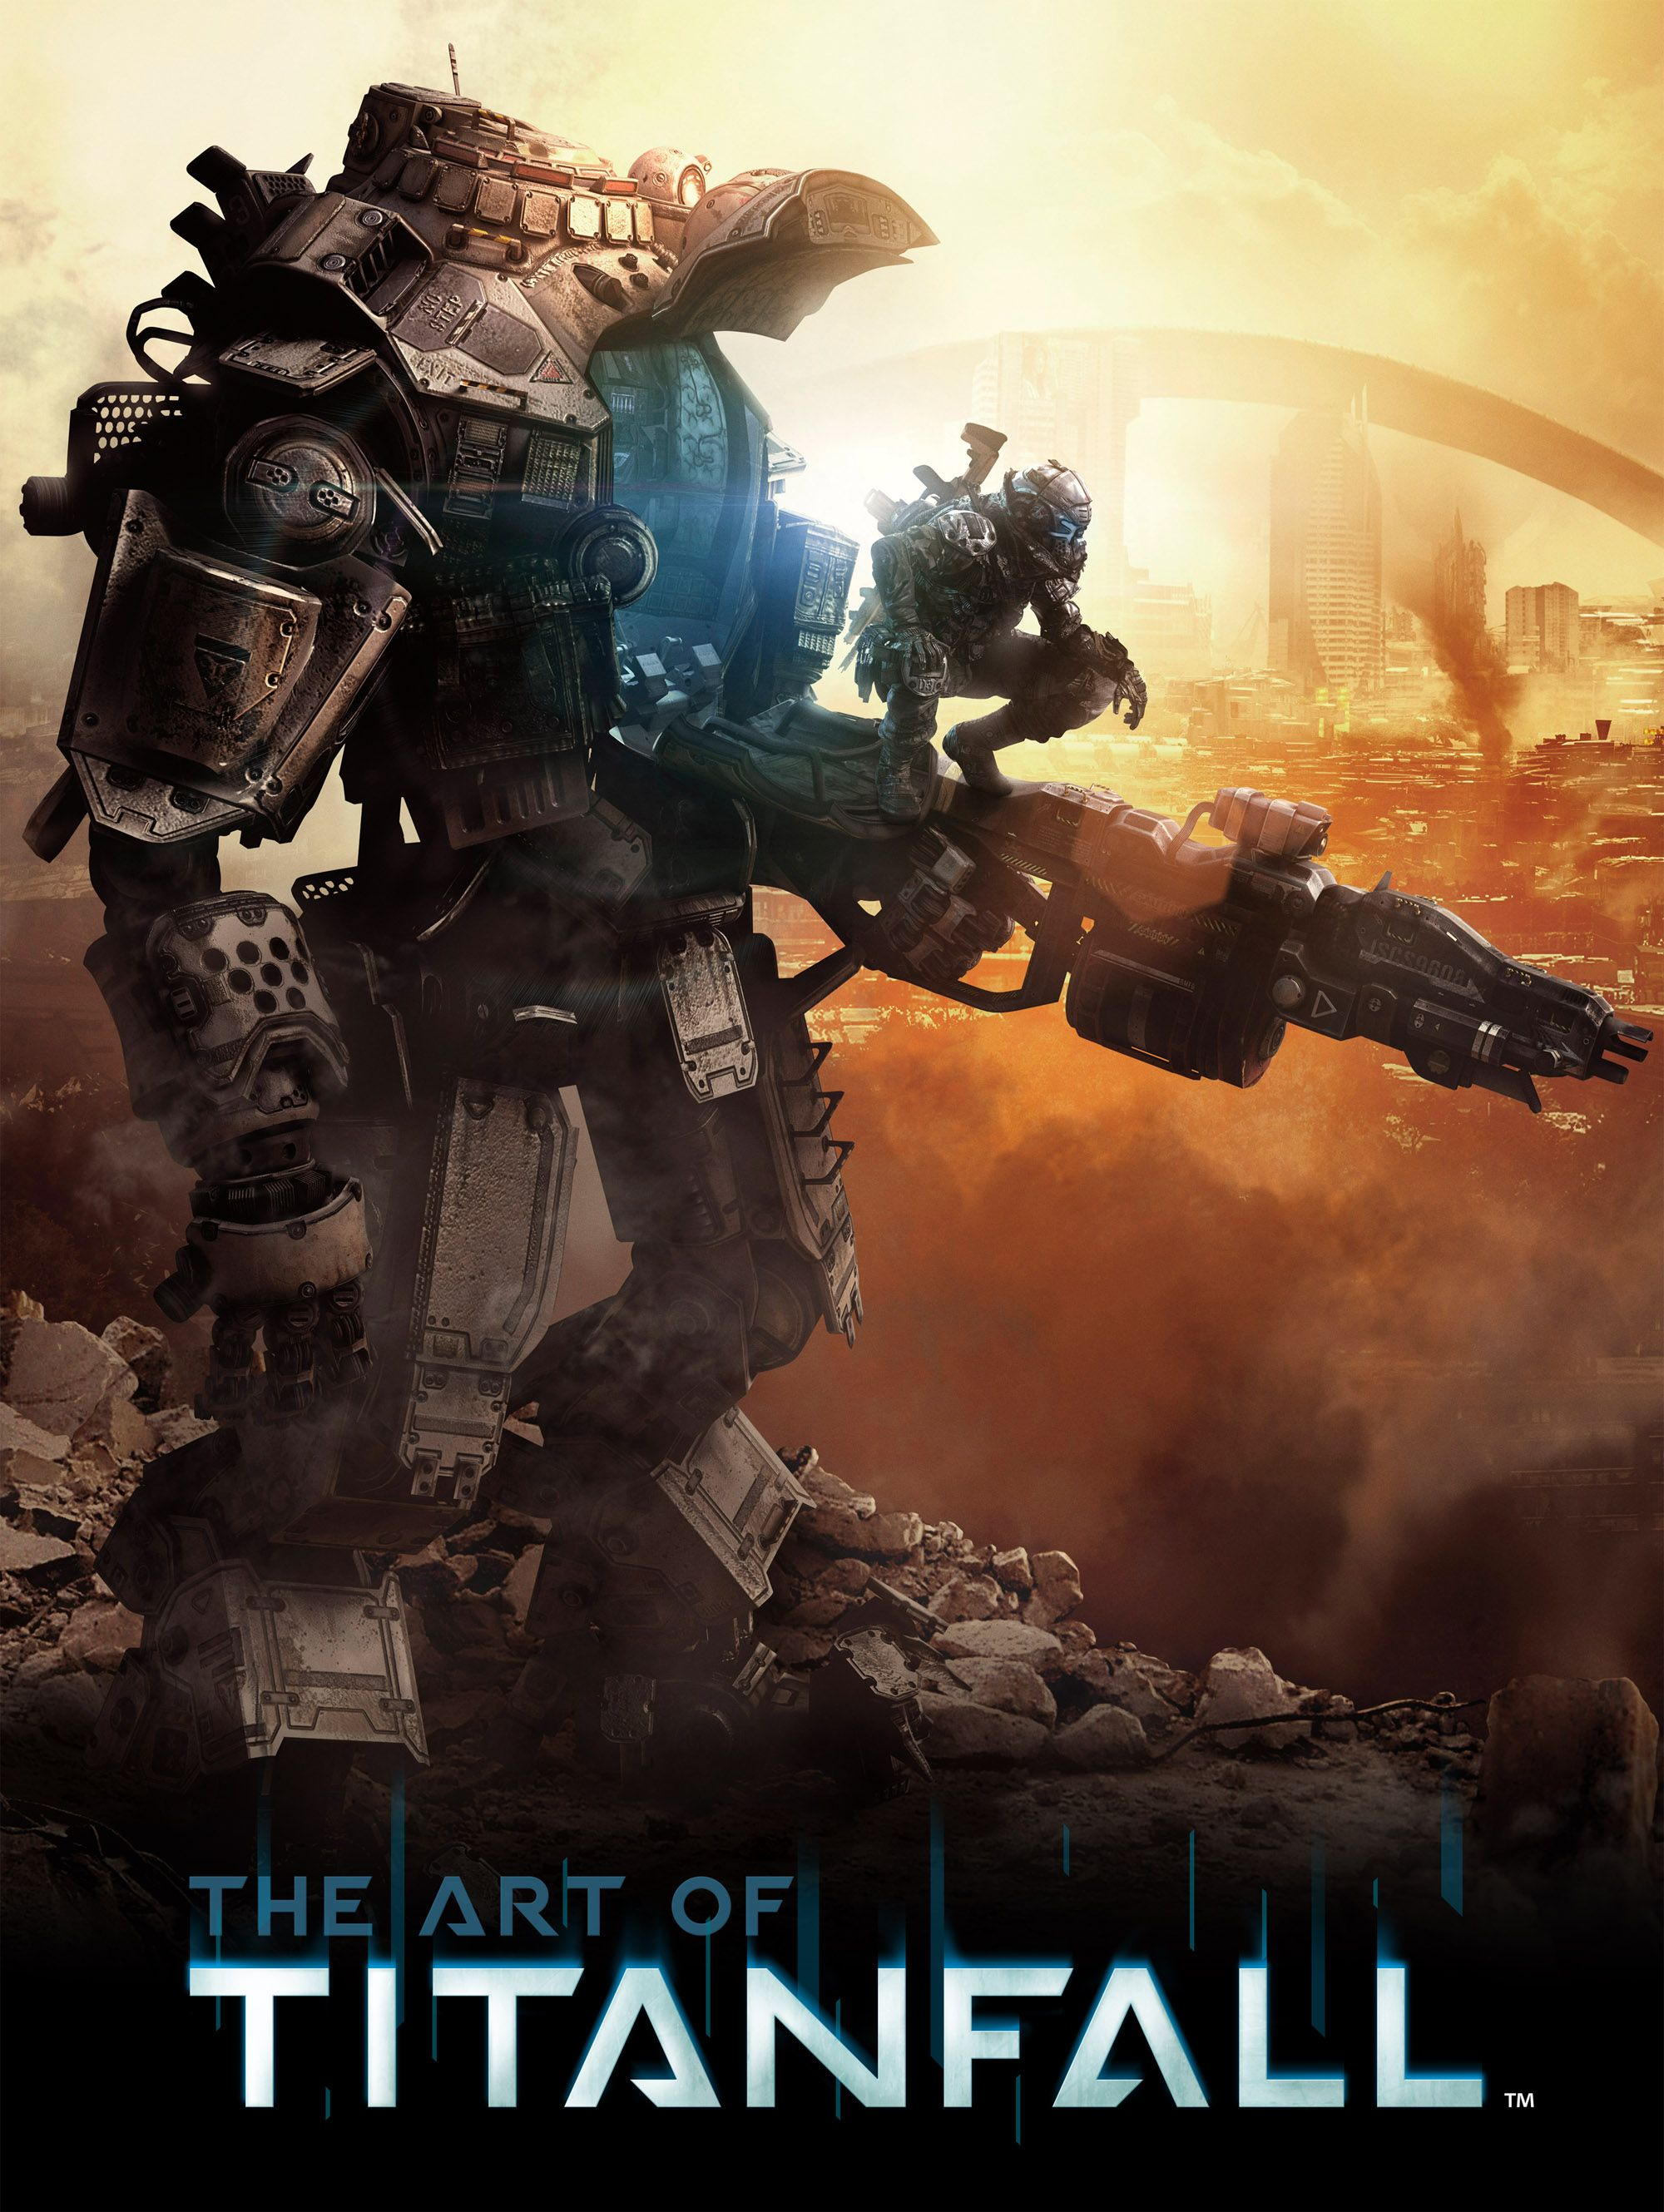 The Art of Titanfall ทหาร